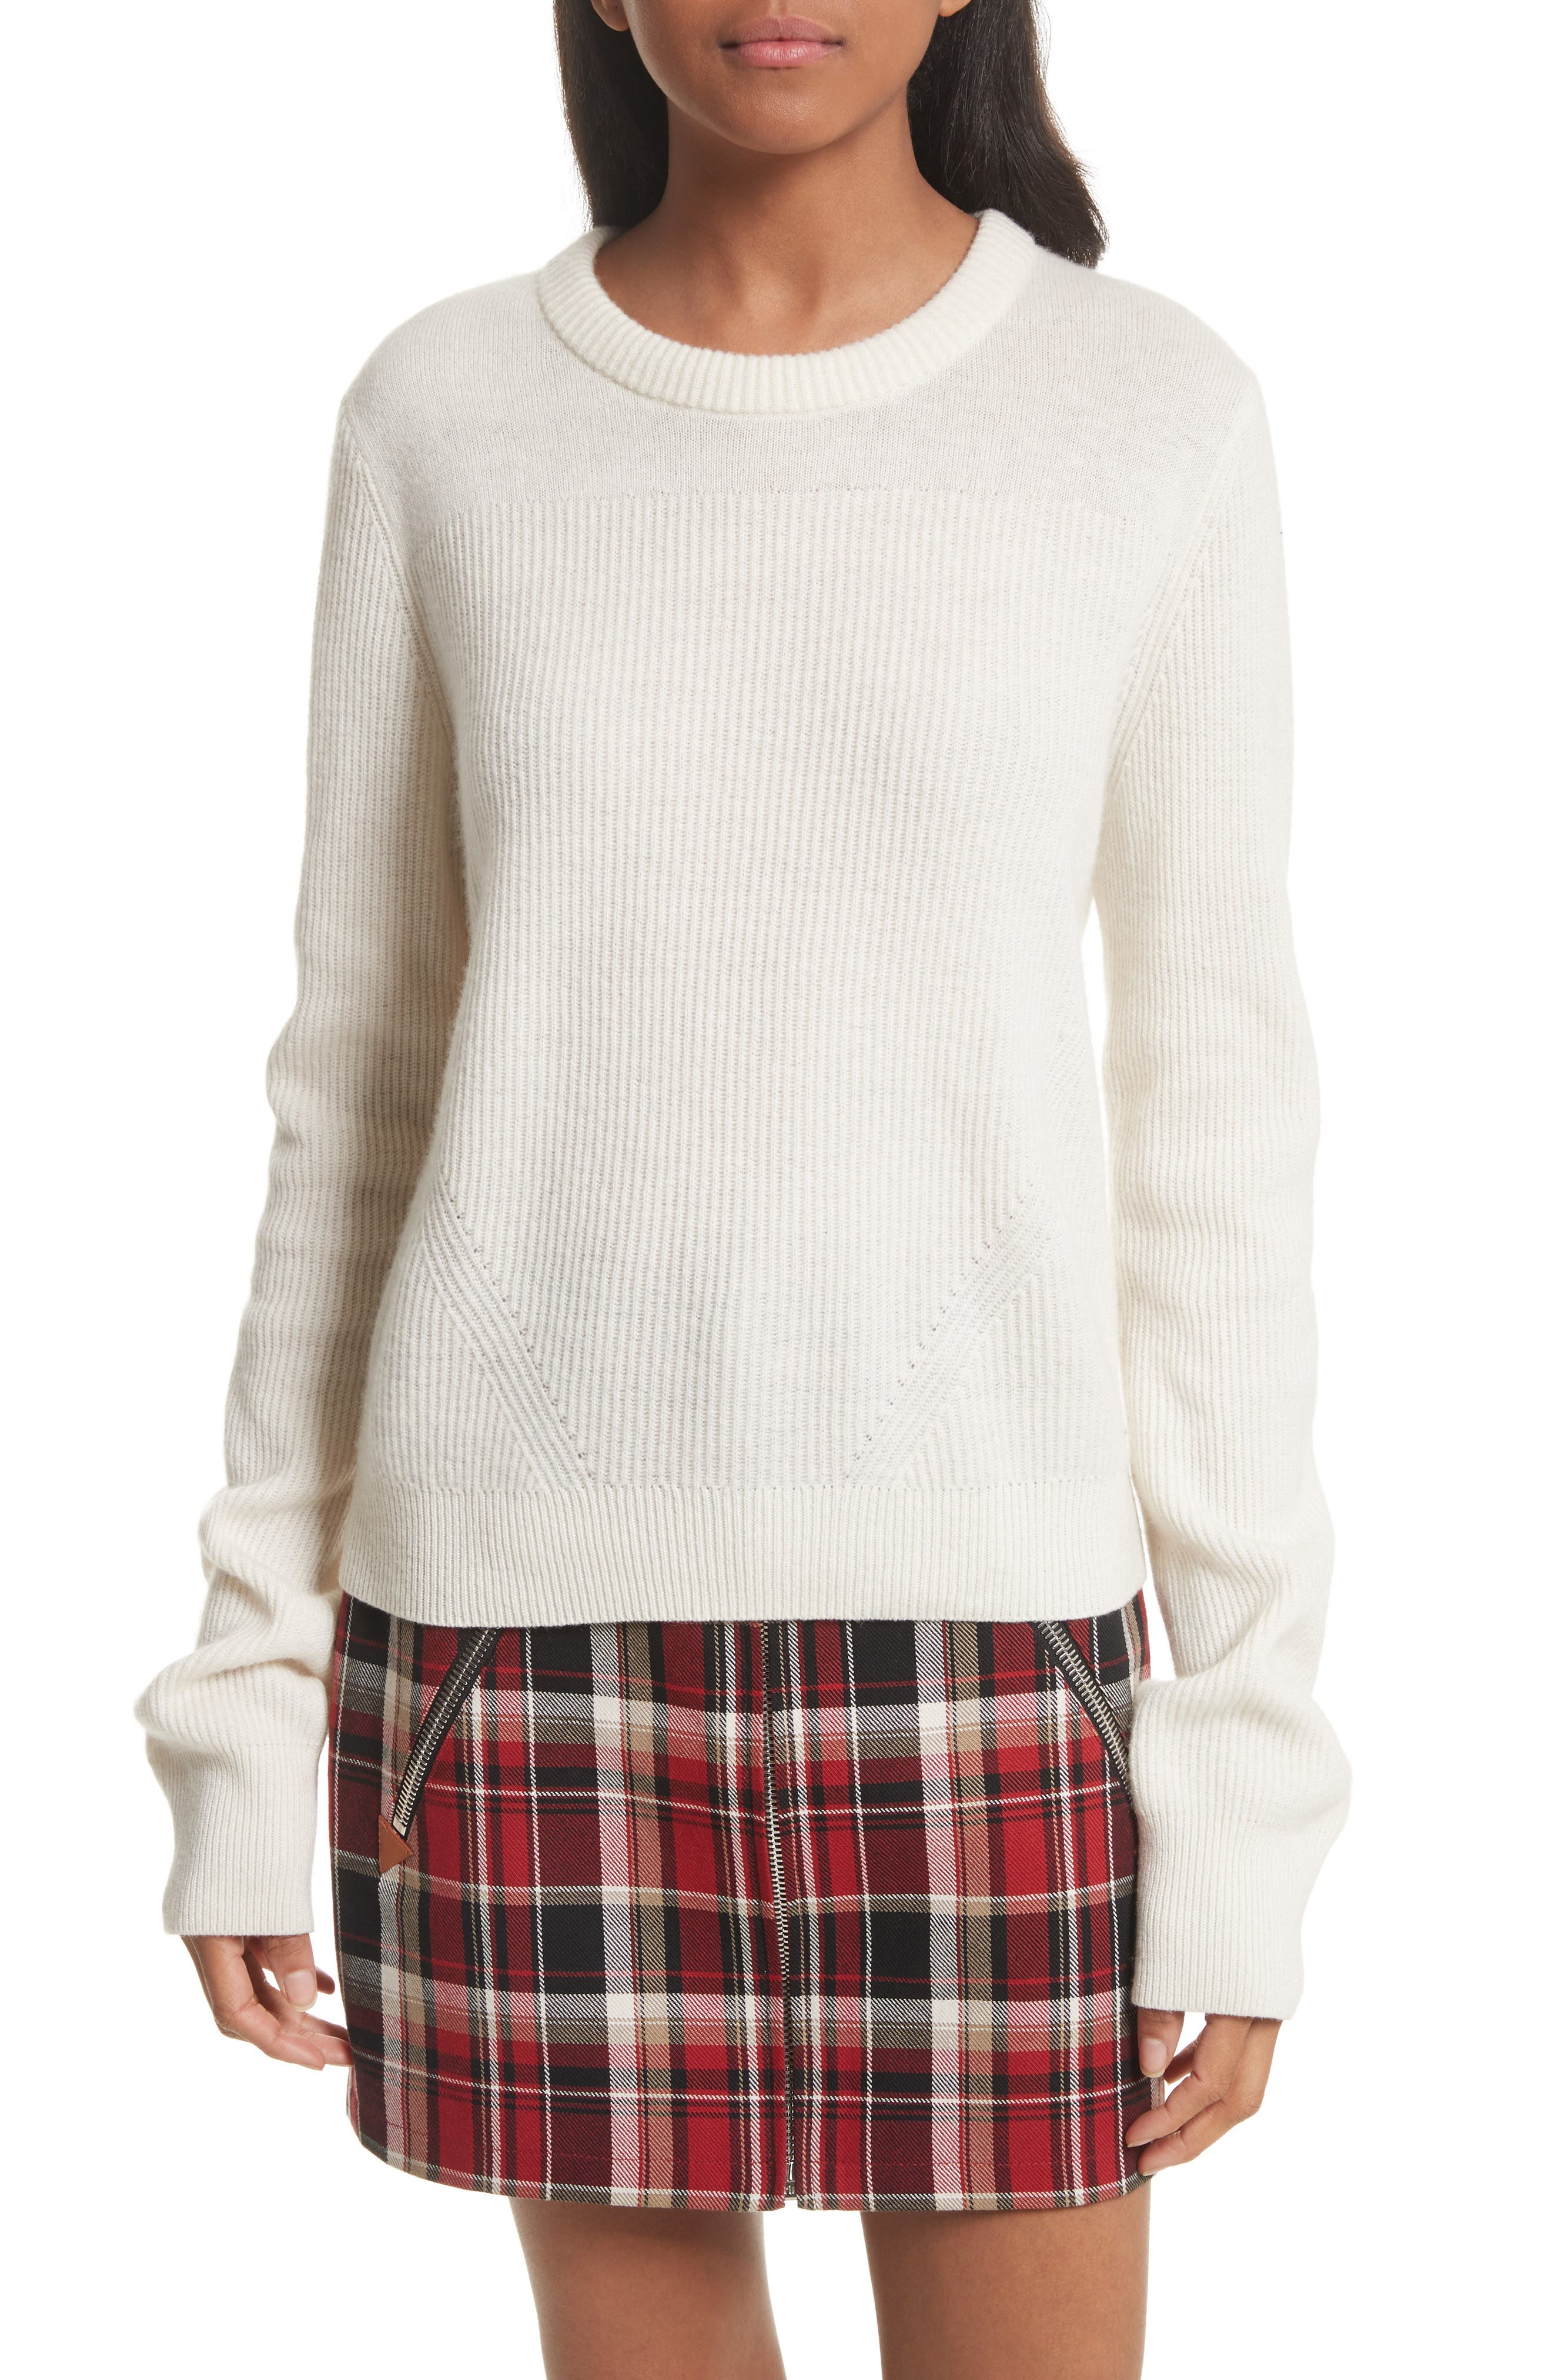 Ace Cashmere Crop Sweater,                             Main thumbnail 1, color,                             Ivory